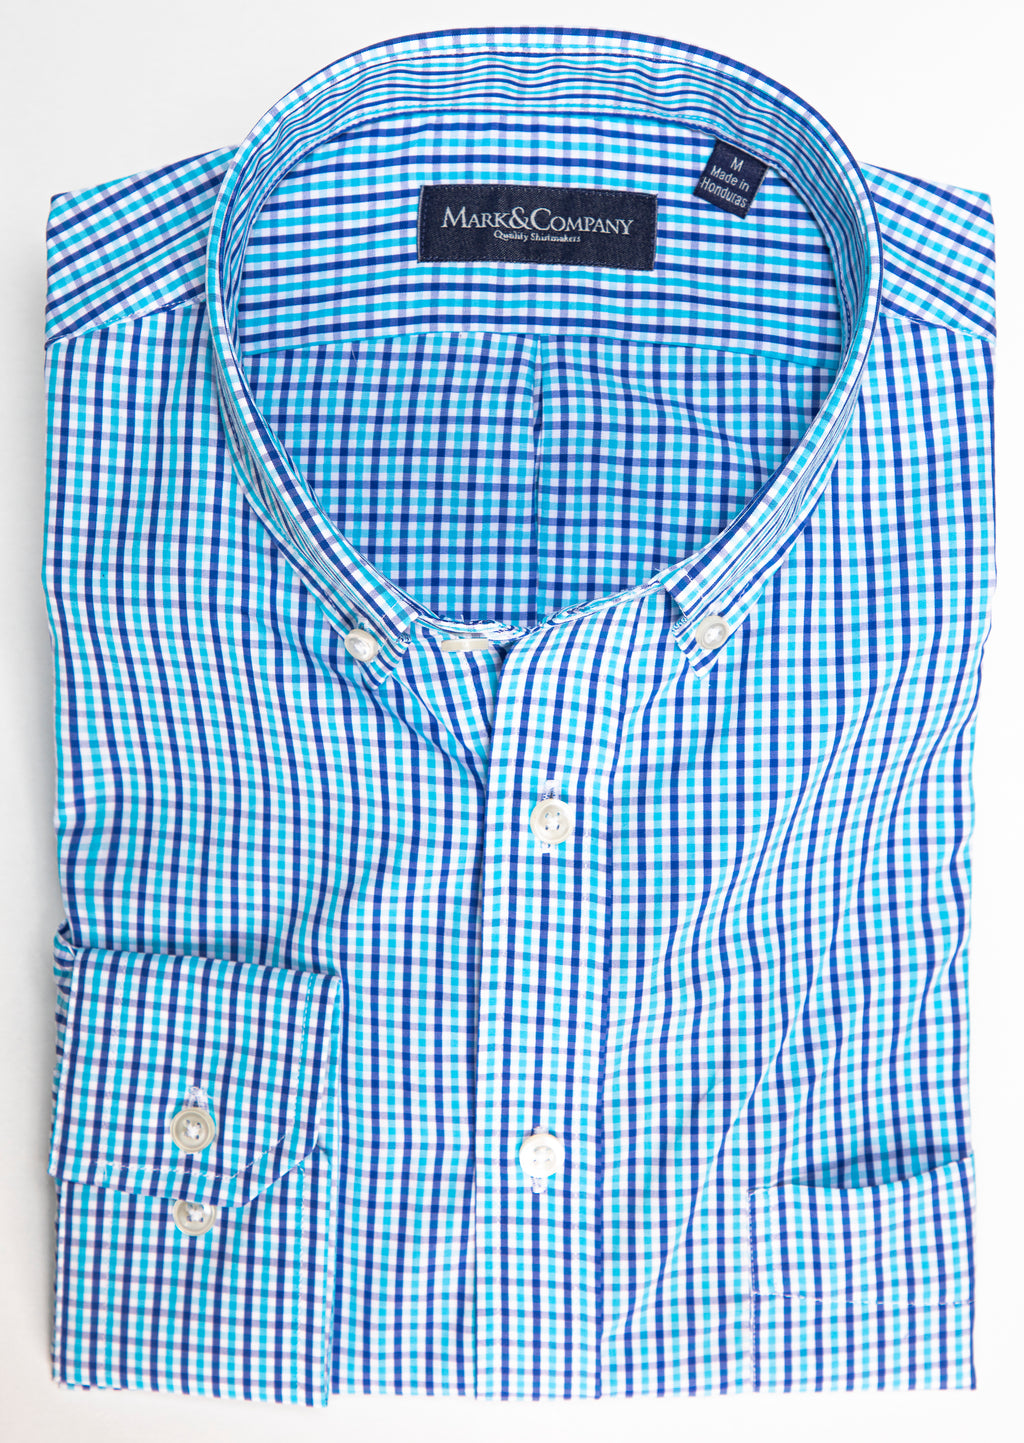 Aqua and Blue Window Pane Button Down Shirt